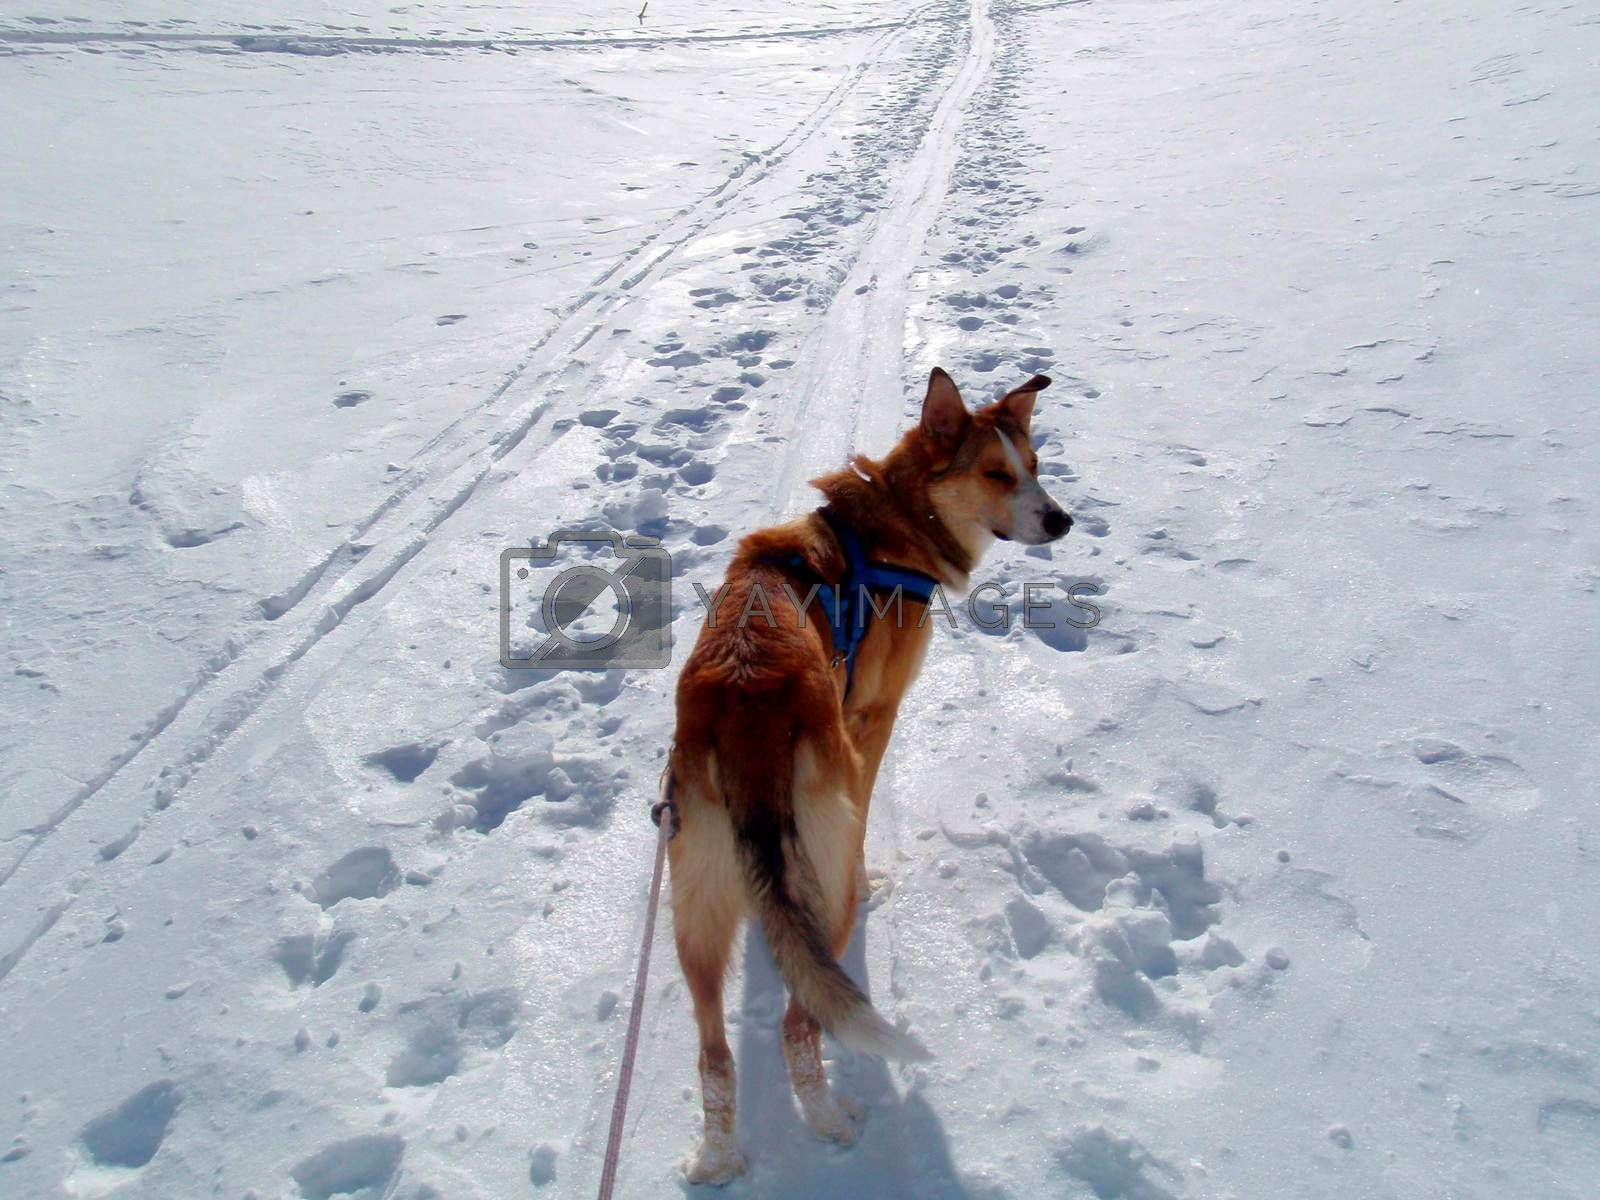 brown dog on a leash walking in snowy winter landscape, sunny day